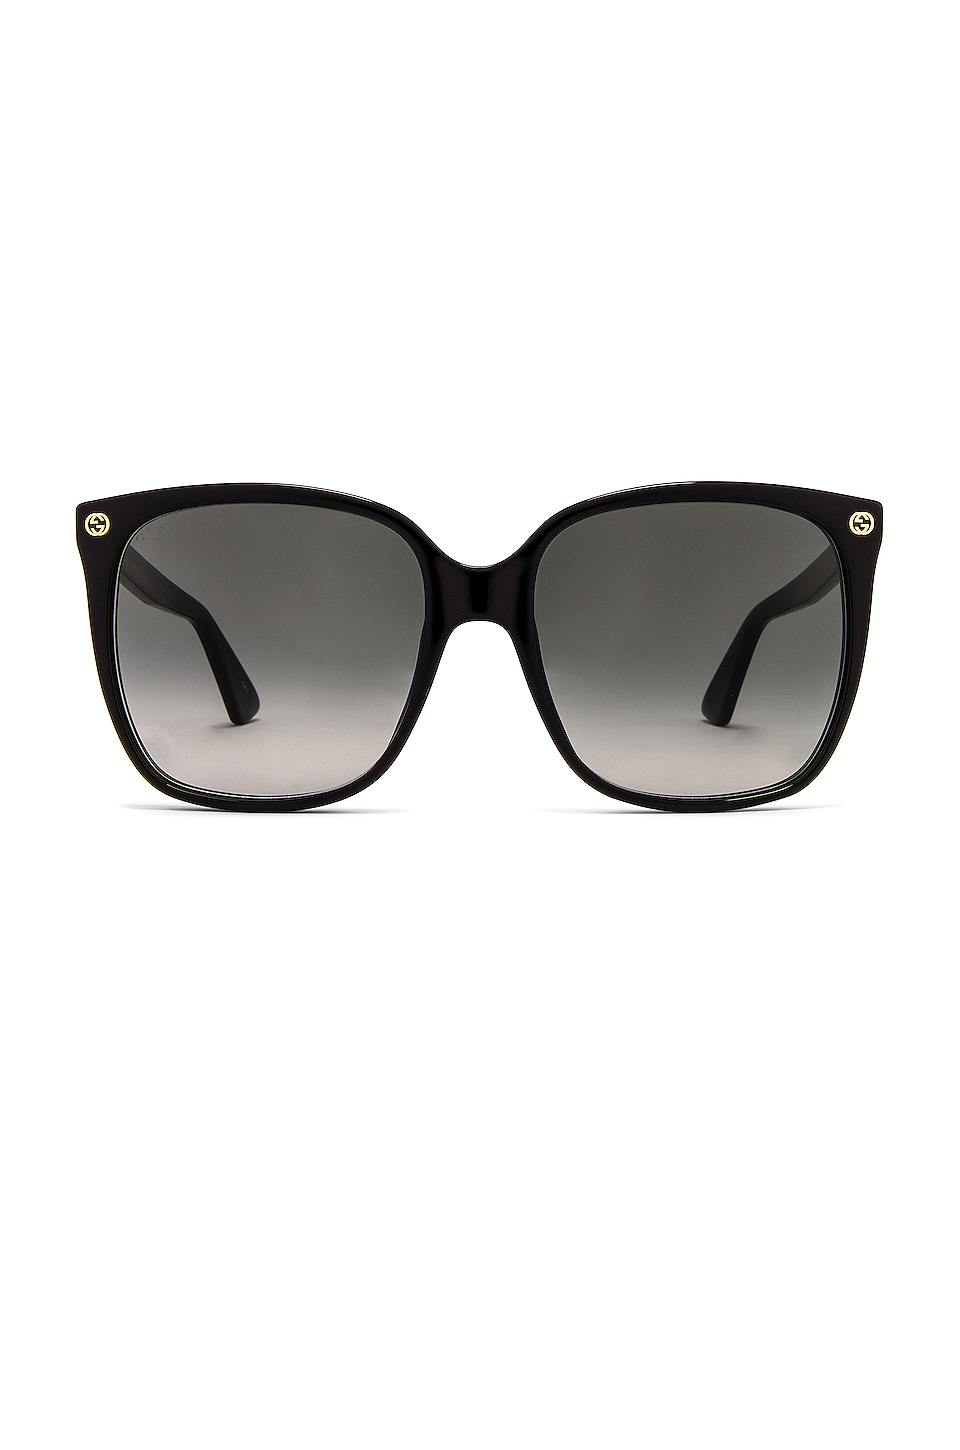 Gucci Sensual Romanticism Lightness in Black